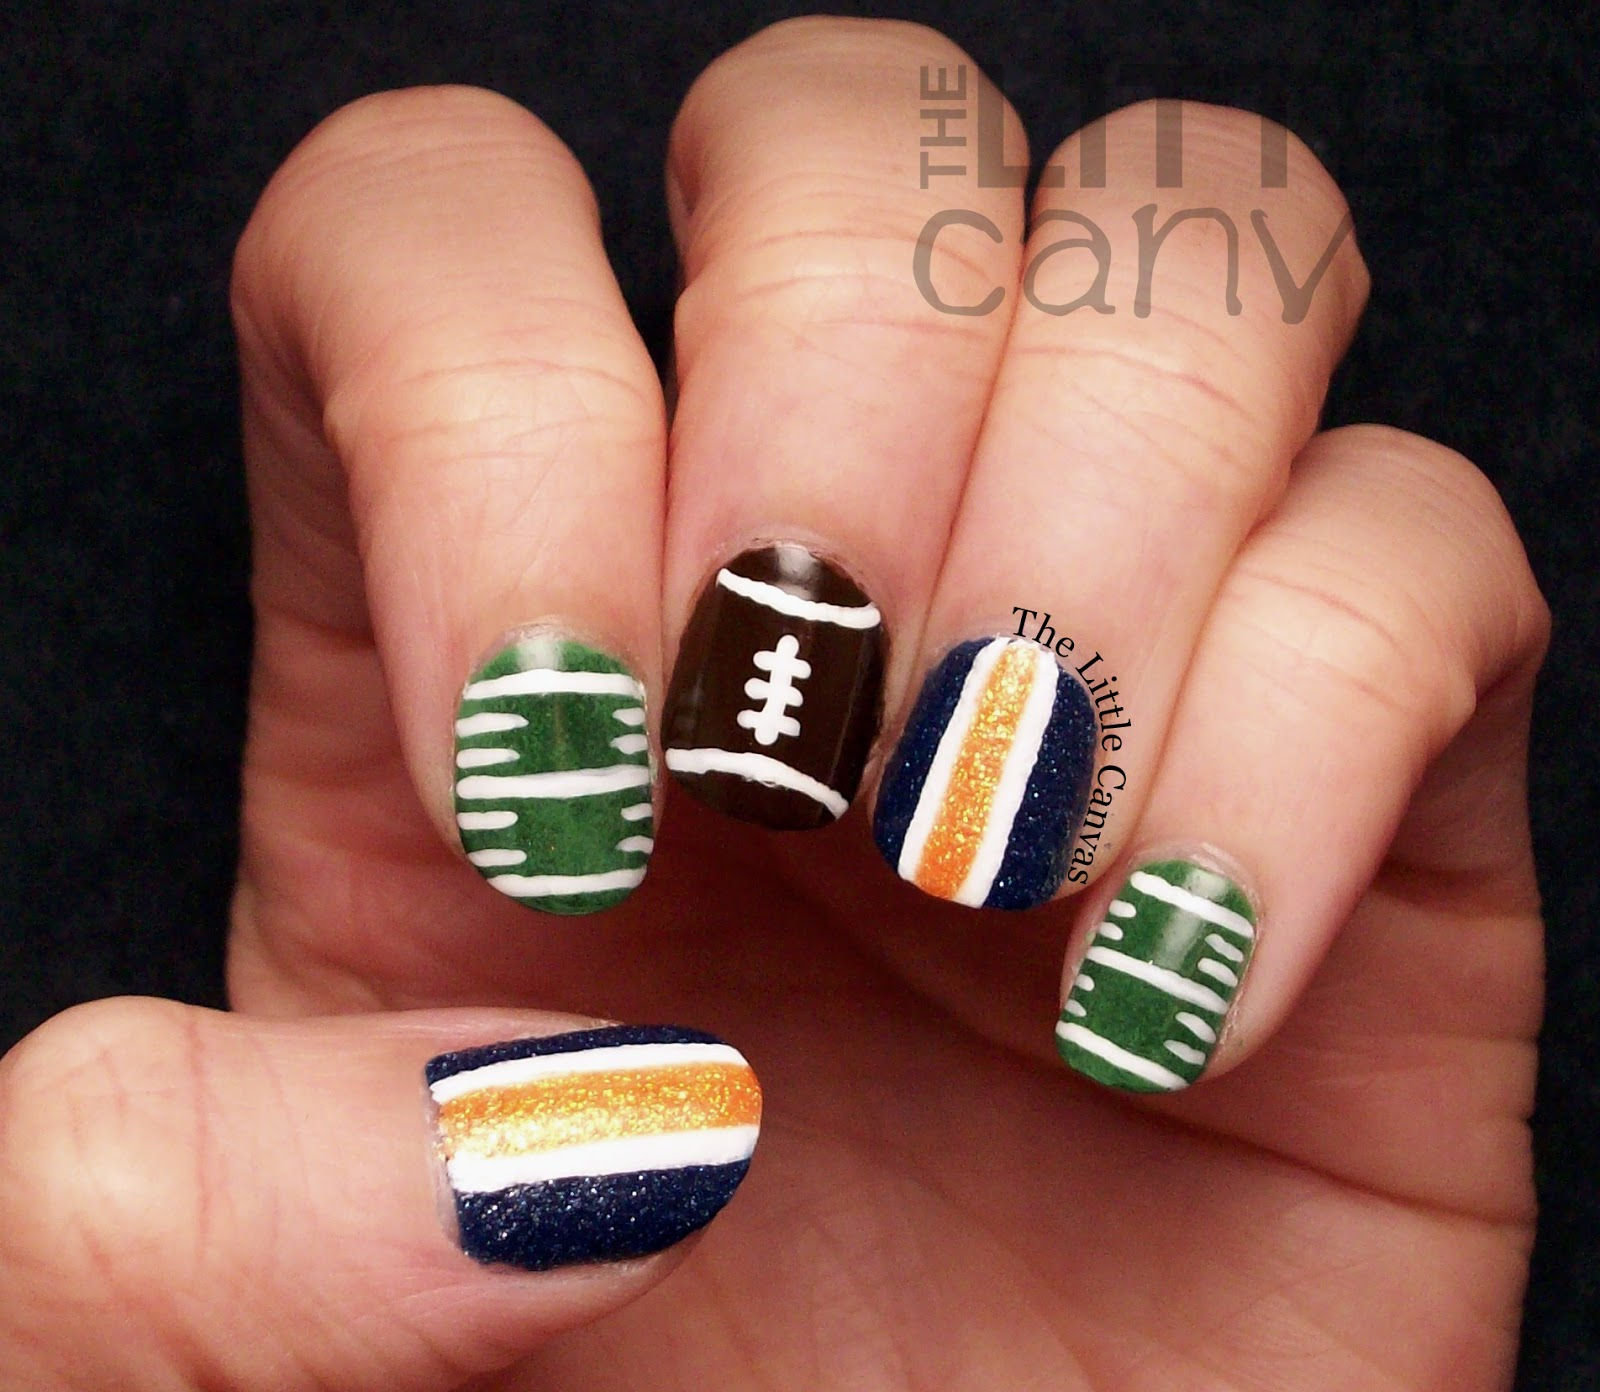 A zoya superbowl manicure go broncos the little canvas lets take a look prinsesfo Image collections